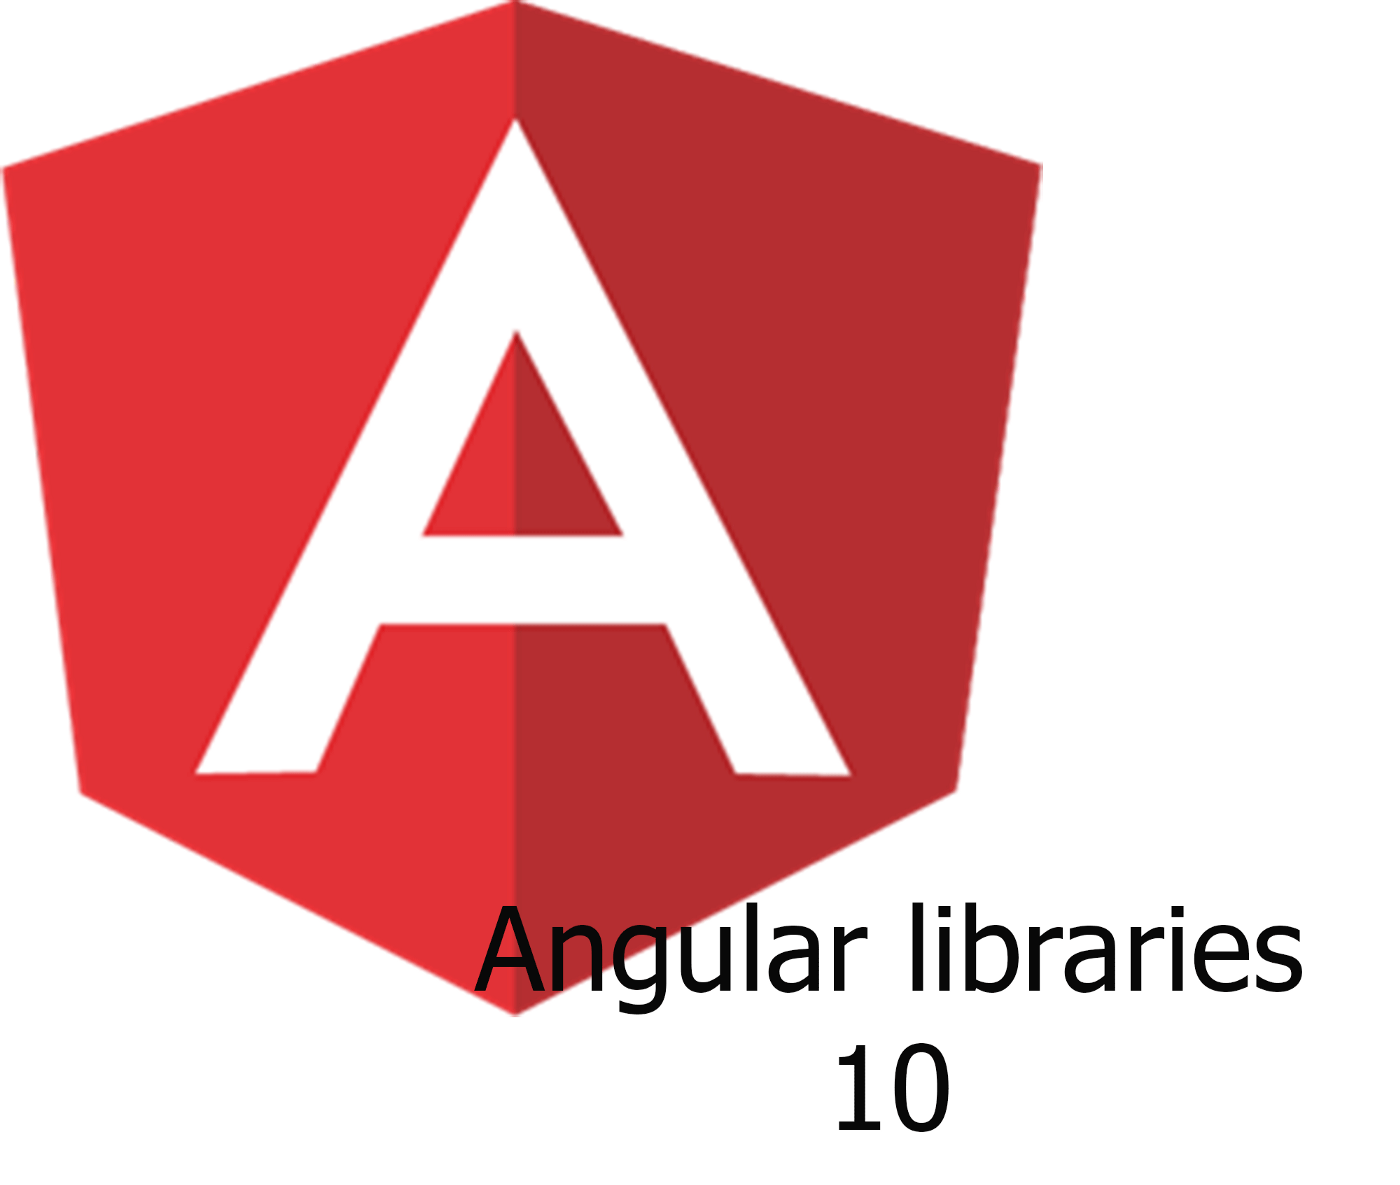 the picture is about Angular